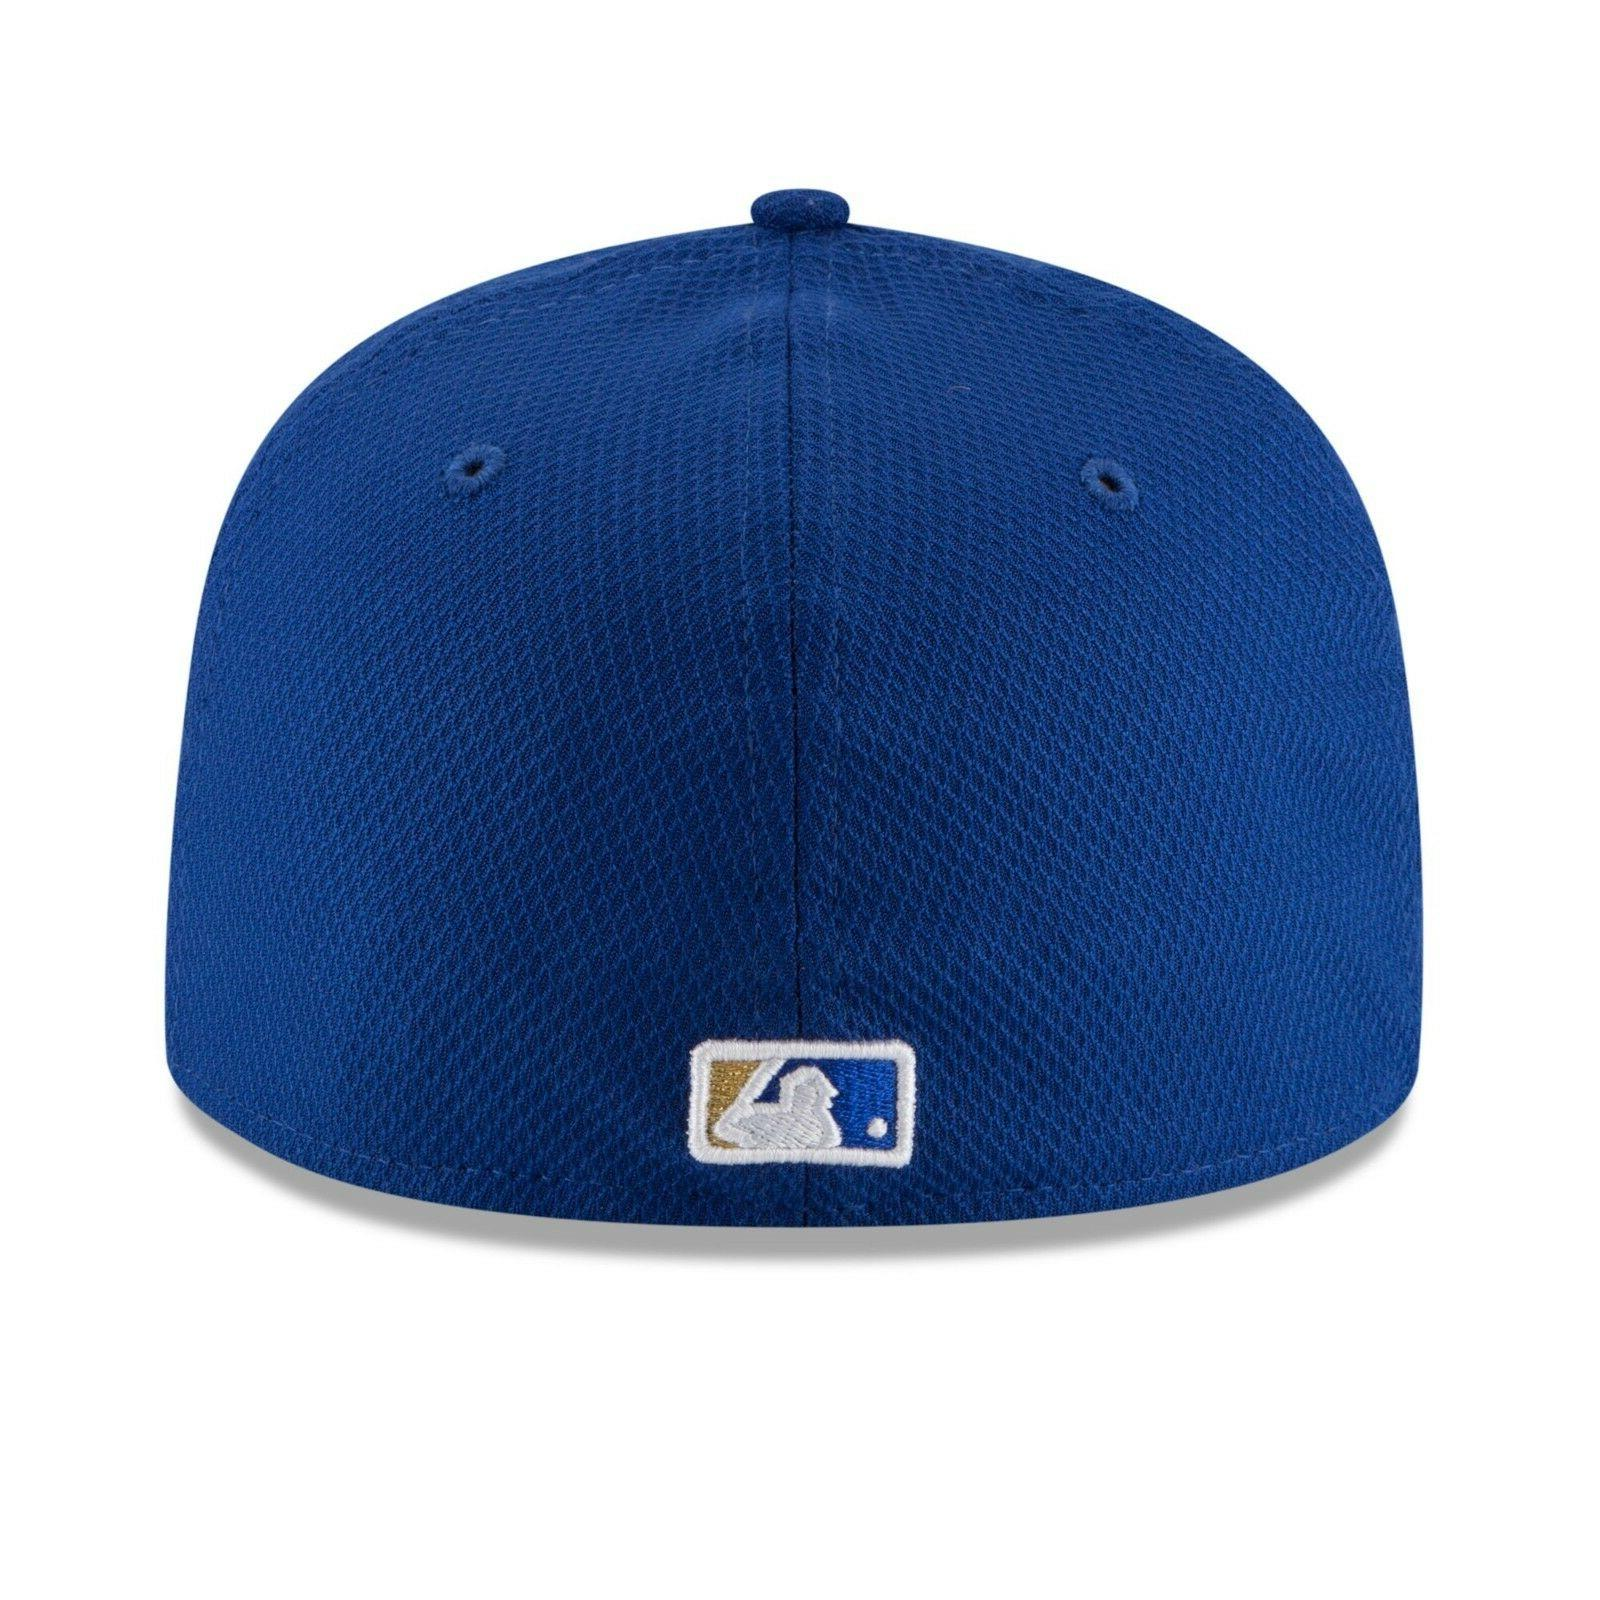 SIZE 1/2 NEW ERA ROYALS MLB BLUE GOLD FITTED CAP HAT